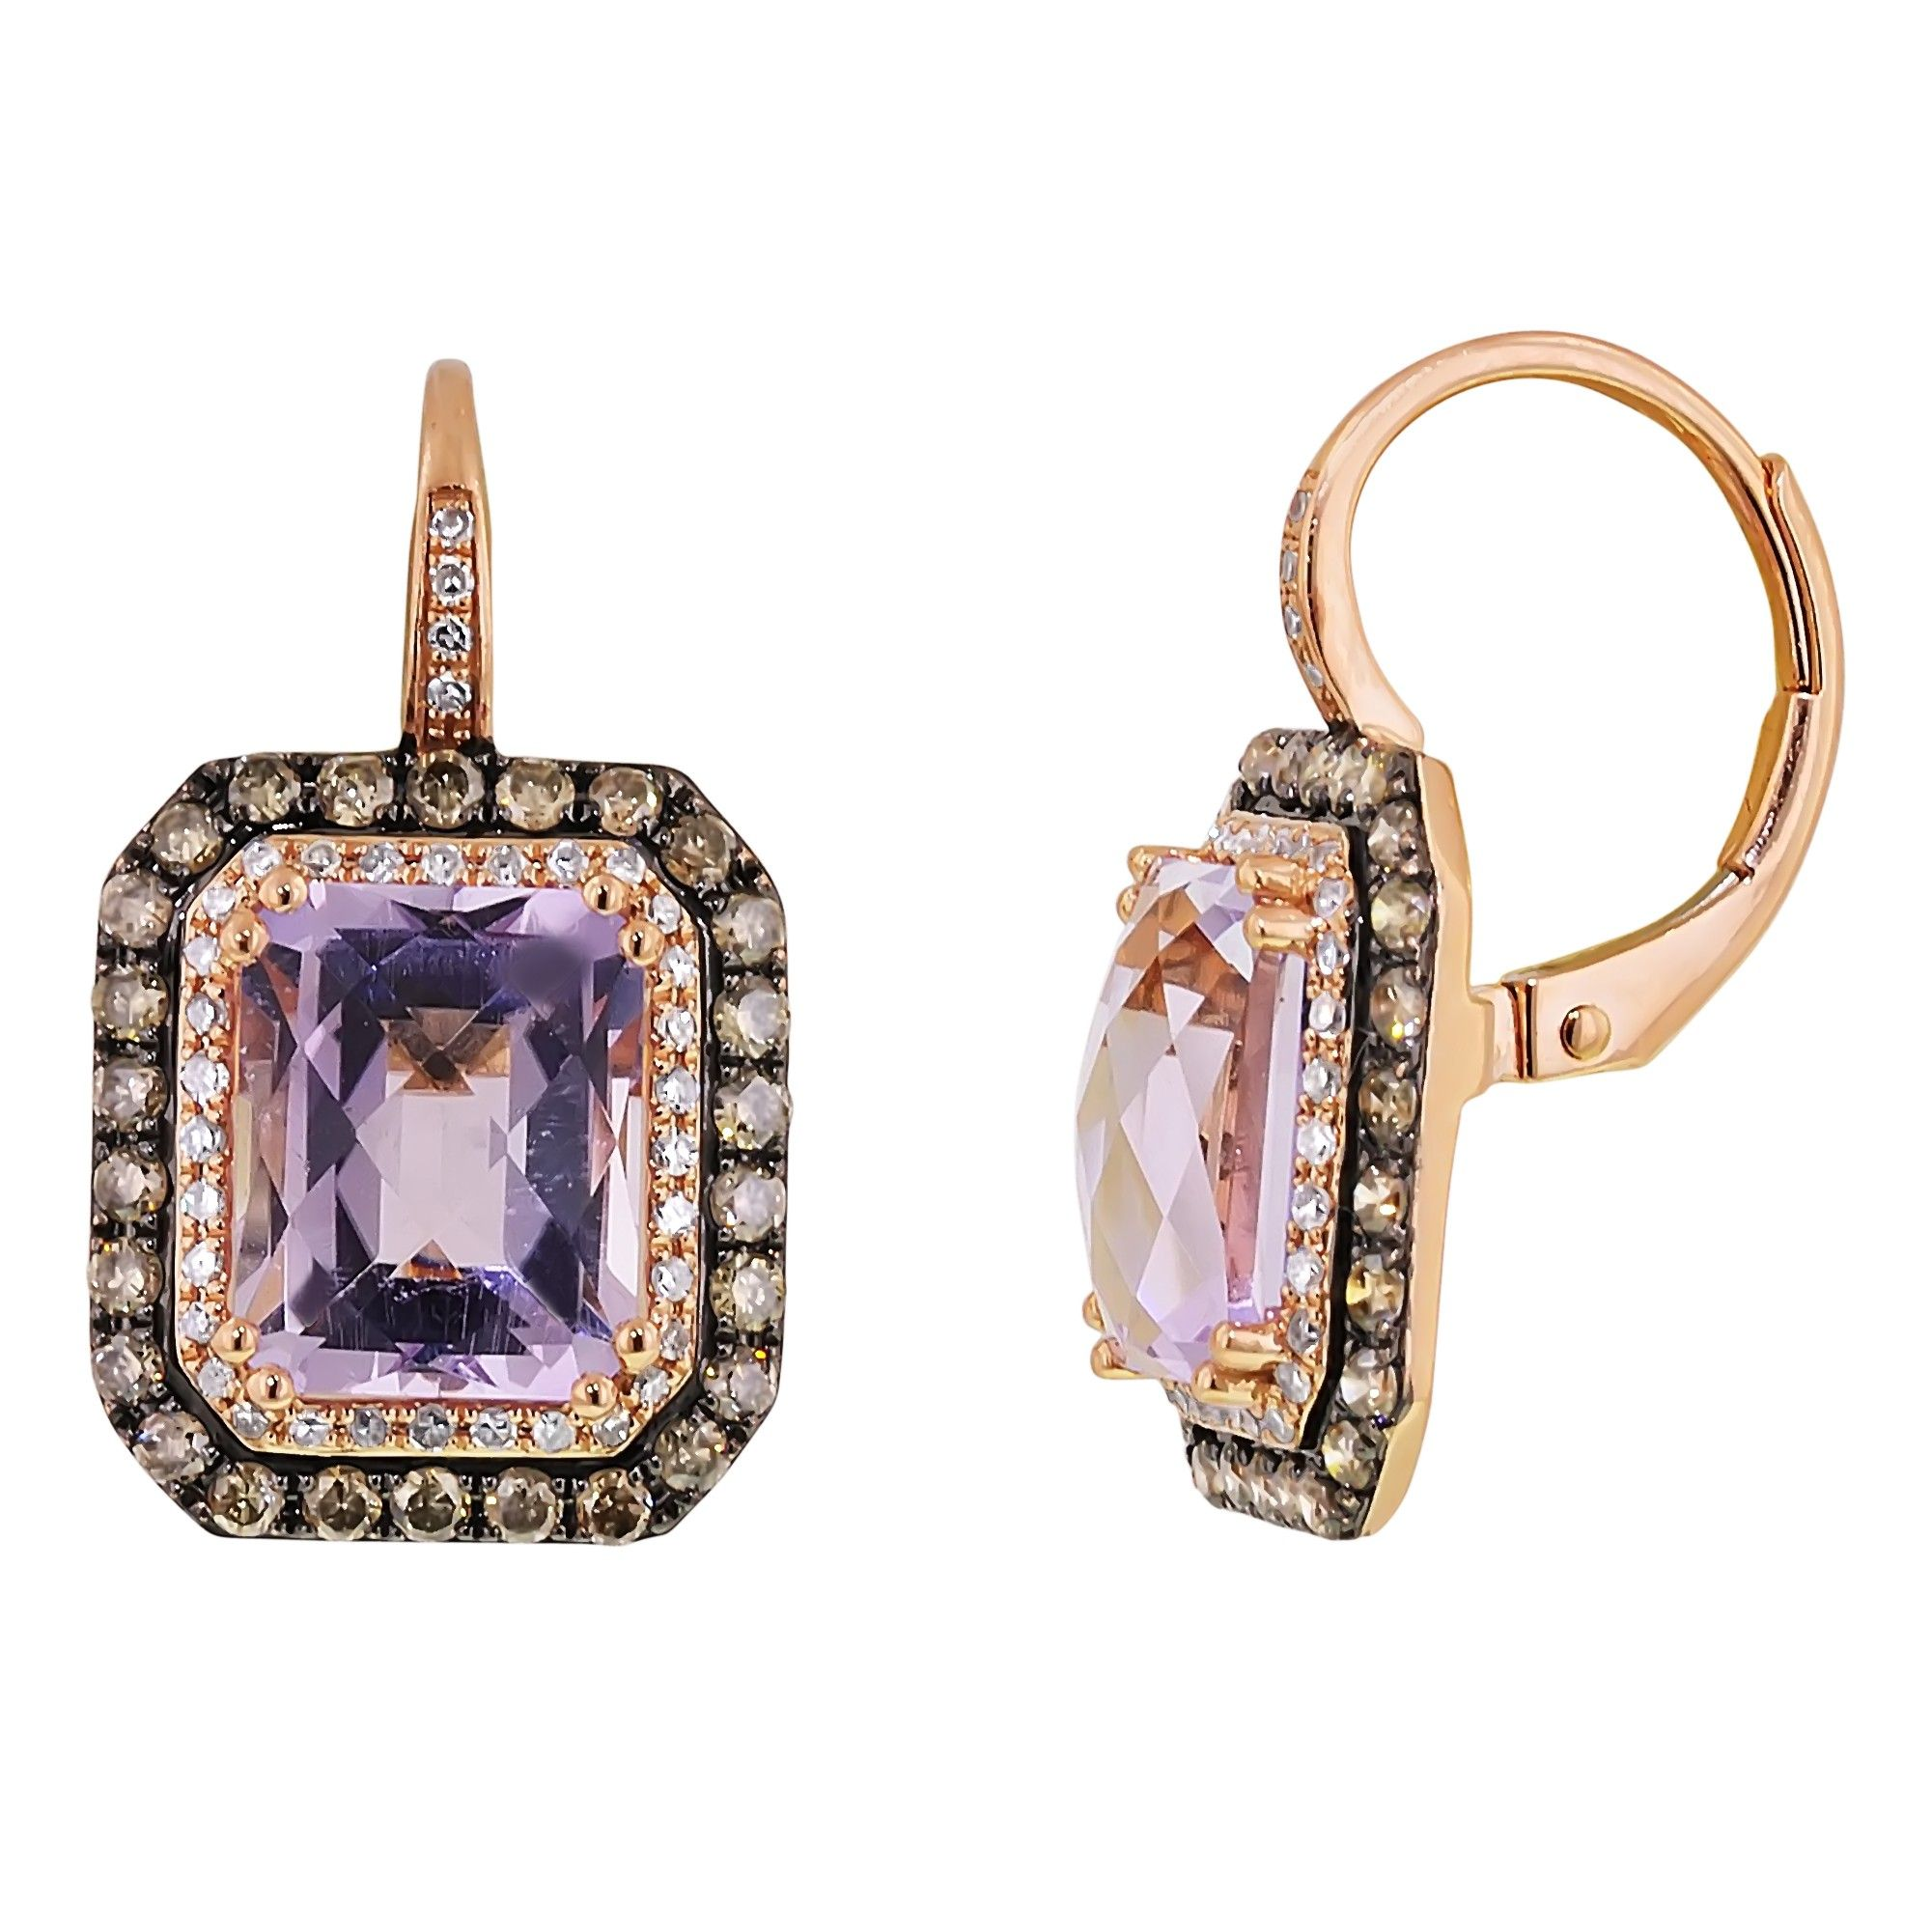 Dabakarov Cush Pink Amethyst Earrings In 14kt Rose Gold With Diamonds These Exquisite